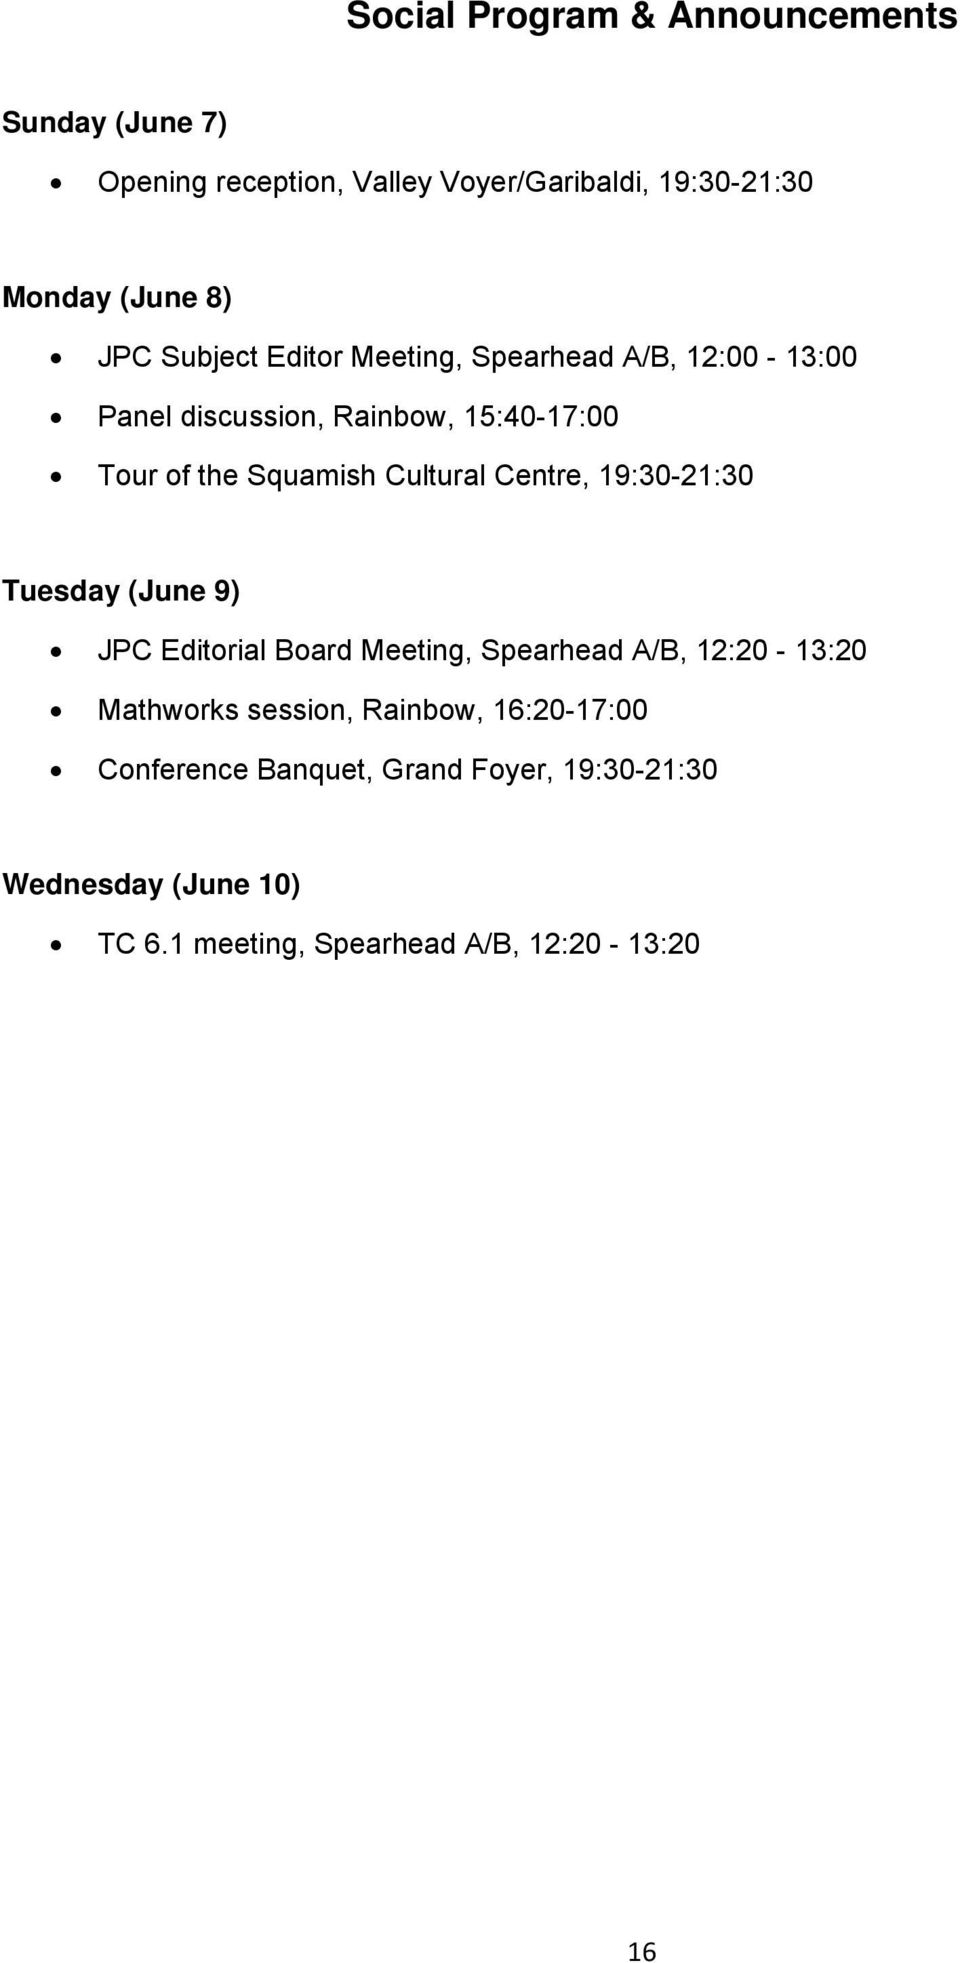 Centre, 19:30-21:30 Tuesday (June 9) JPC Editorial Board Meeting, Spearhead A/B, 12:20-13:20 Mathworks session,,